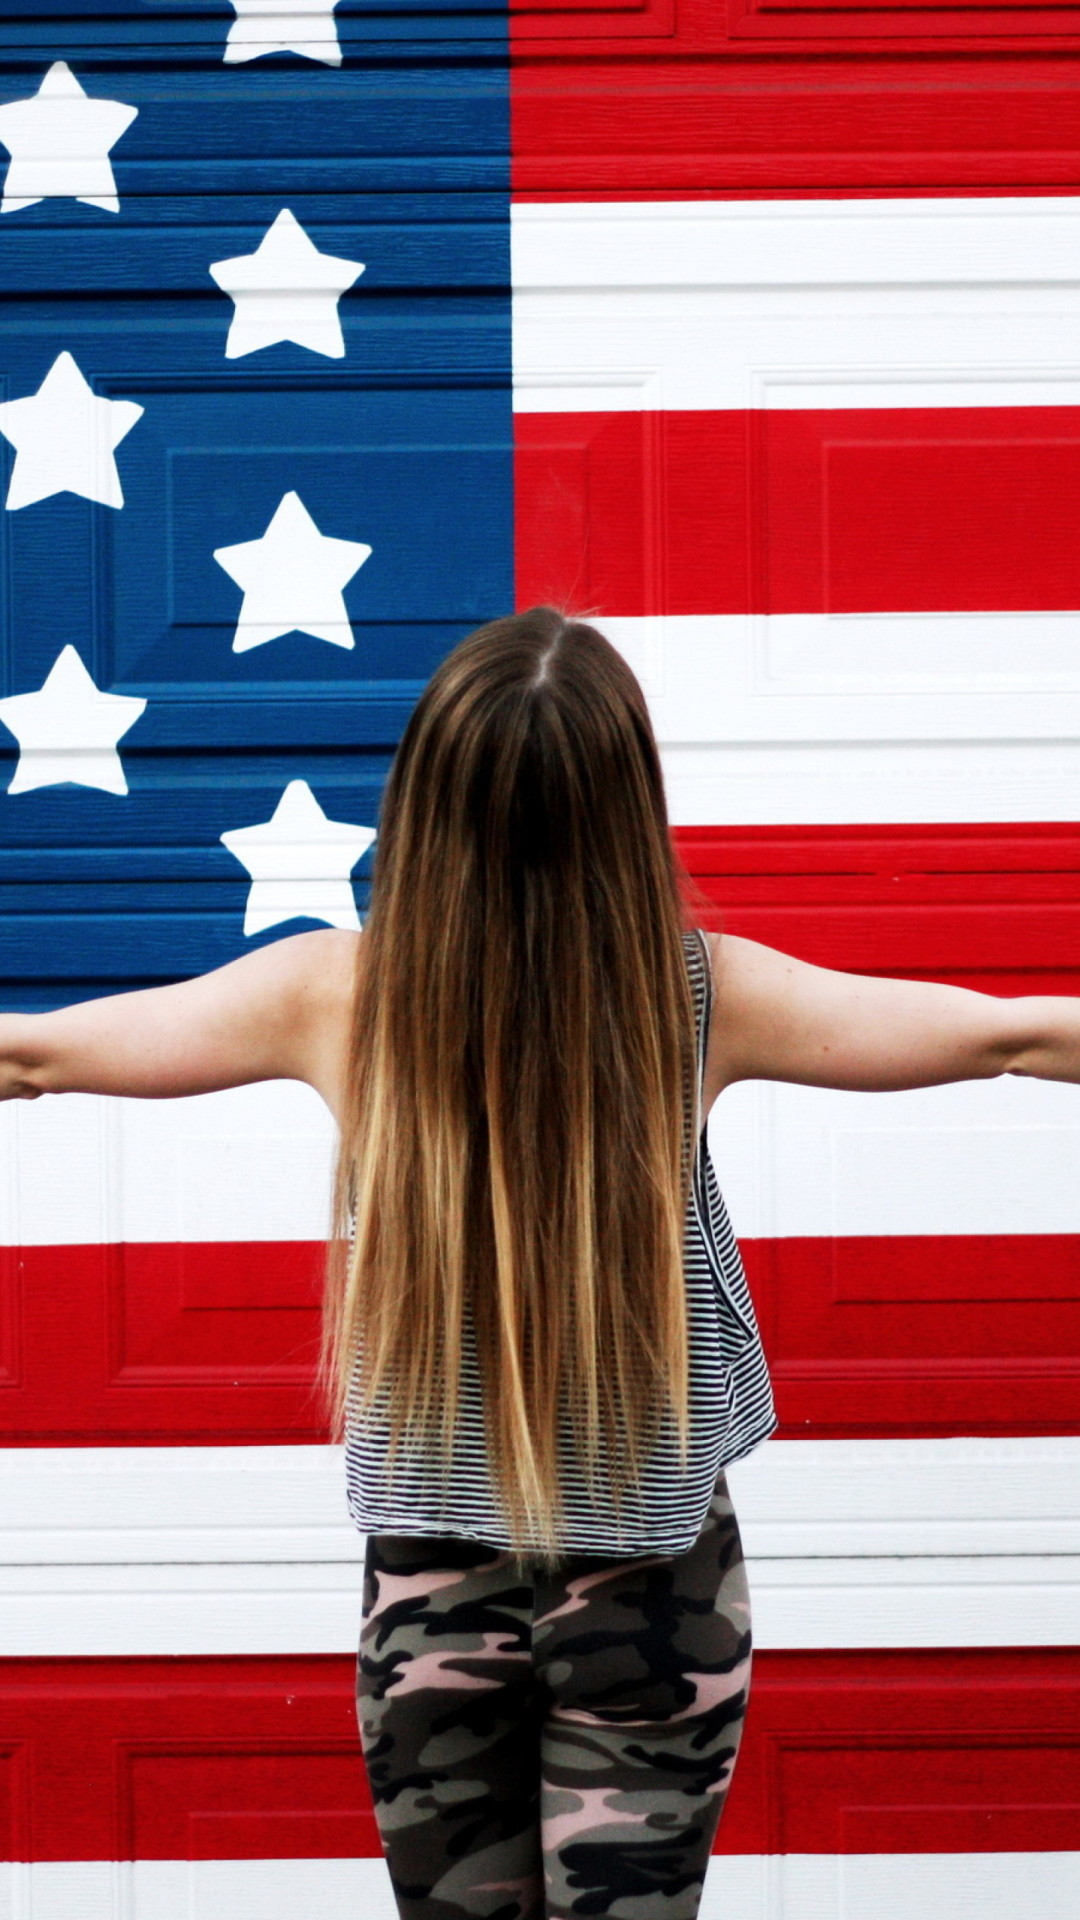 Res: 1080x1920, American girl in front usa flag iphone wallpapers